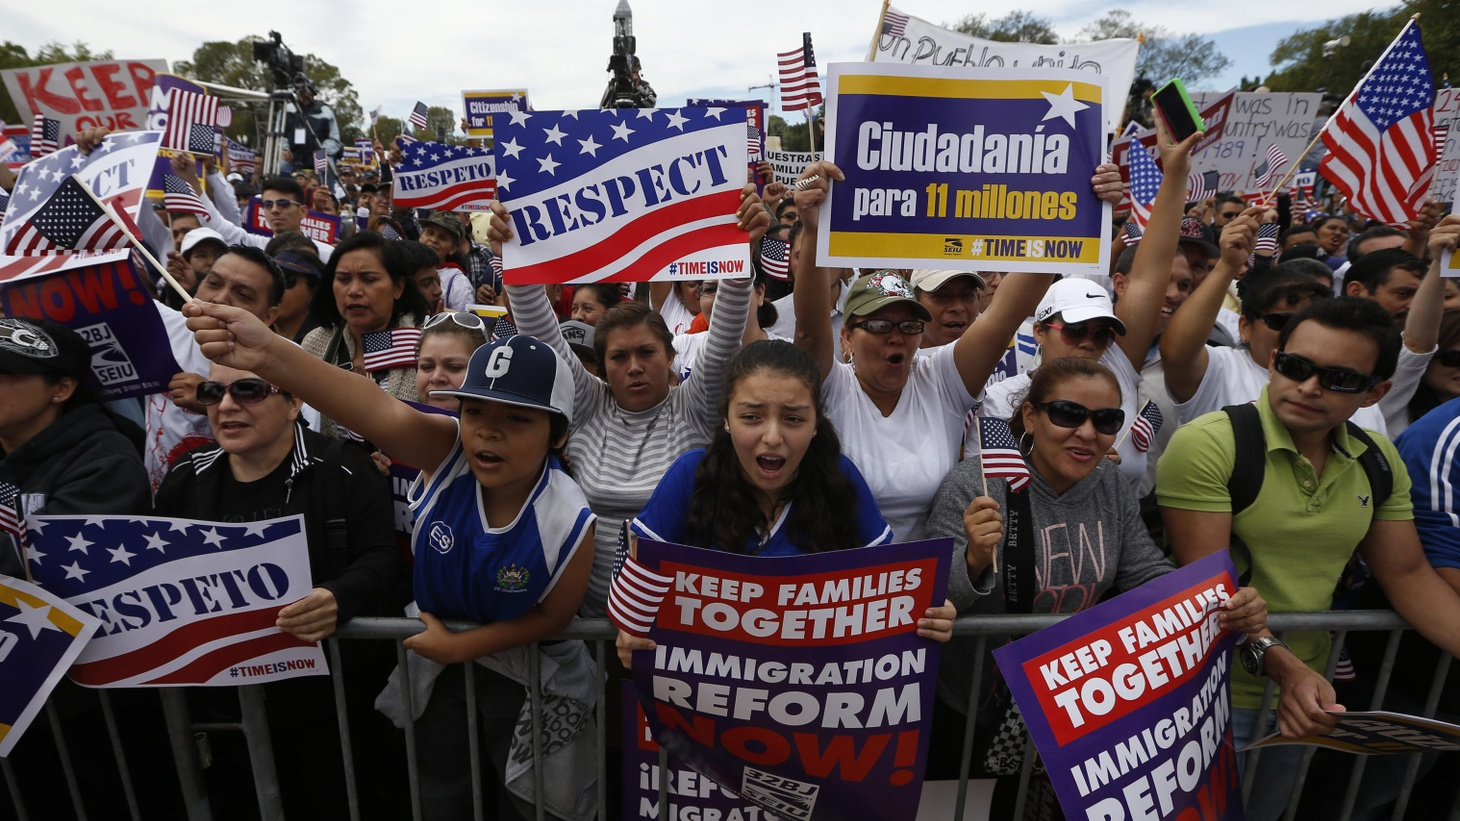 Immigration reform is back on the Capitol Mall today—but it might not reach the halls of Congress. What are the prospects for any legislation this year?